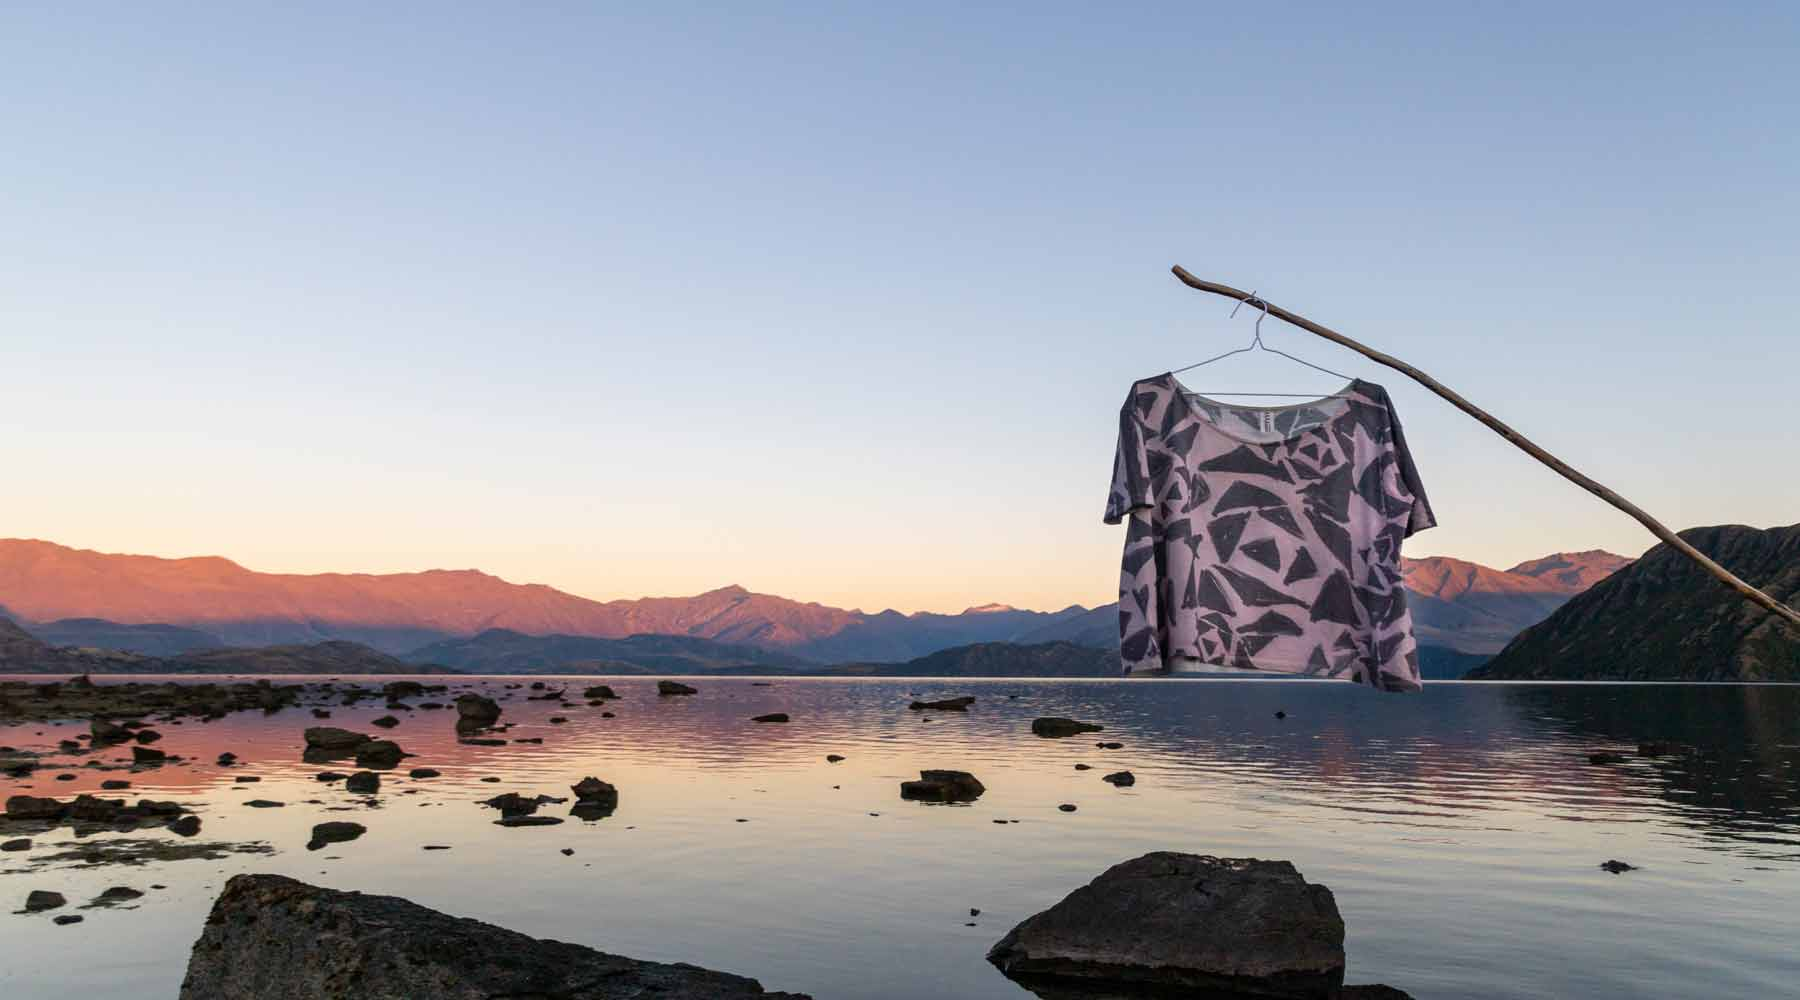 Asmuss Black Rose Tshirt on a coat hanger hung off a stick above the still water and rocks of Lake Wanaka while the sun rises on the mountains in the distance